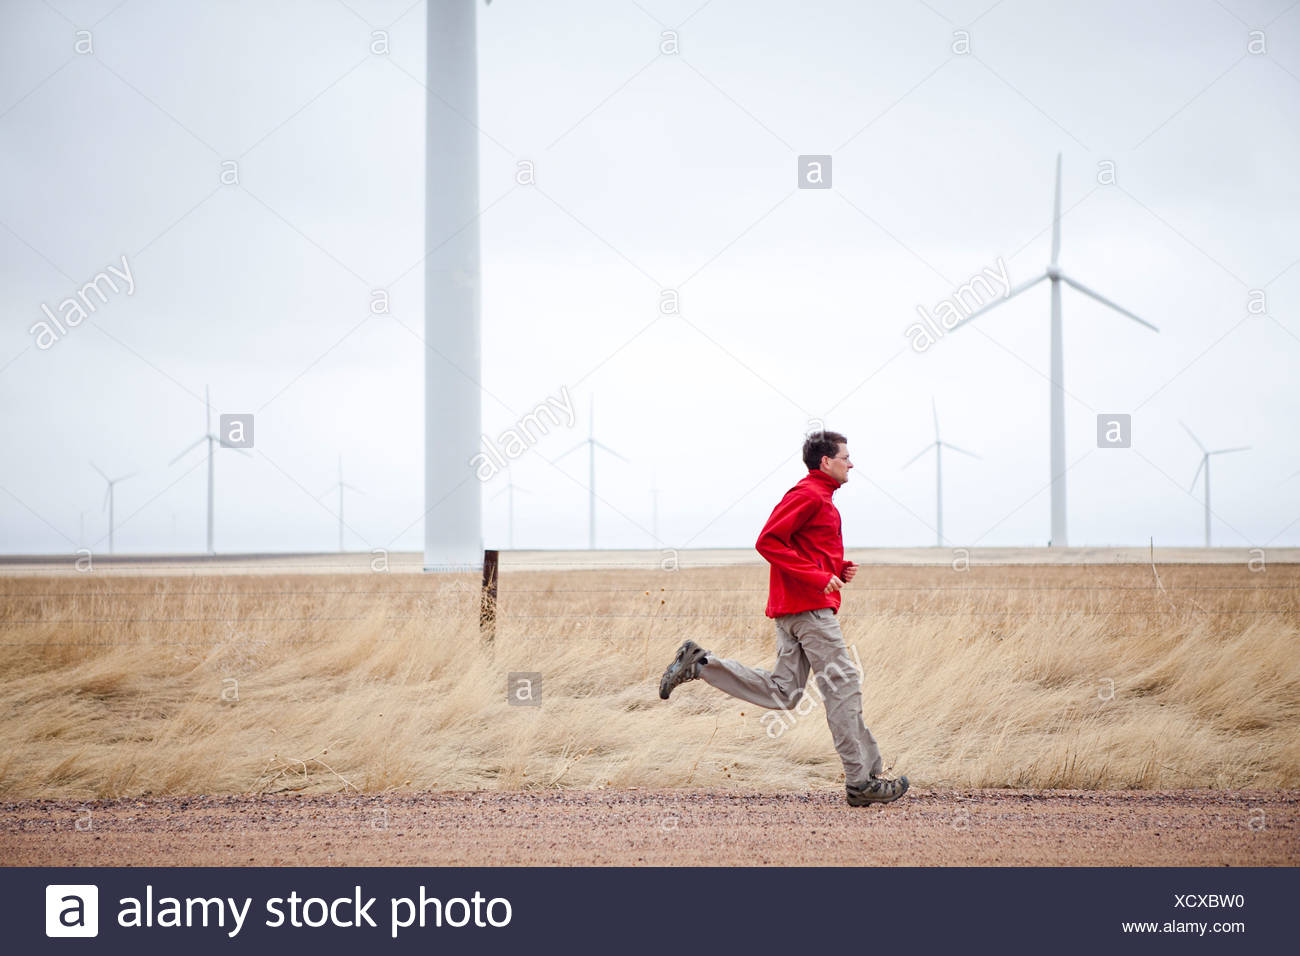 A man runs down a dirt road with windmills in the background, in the Pawnee Grasslands, Colorado. - Stock Image